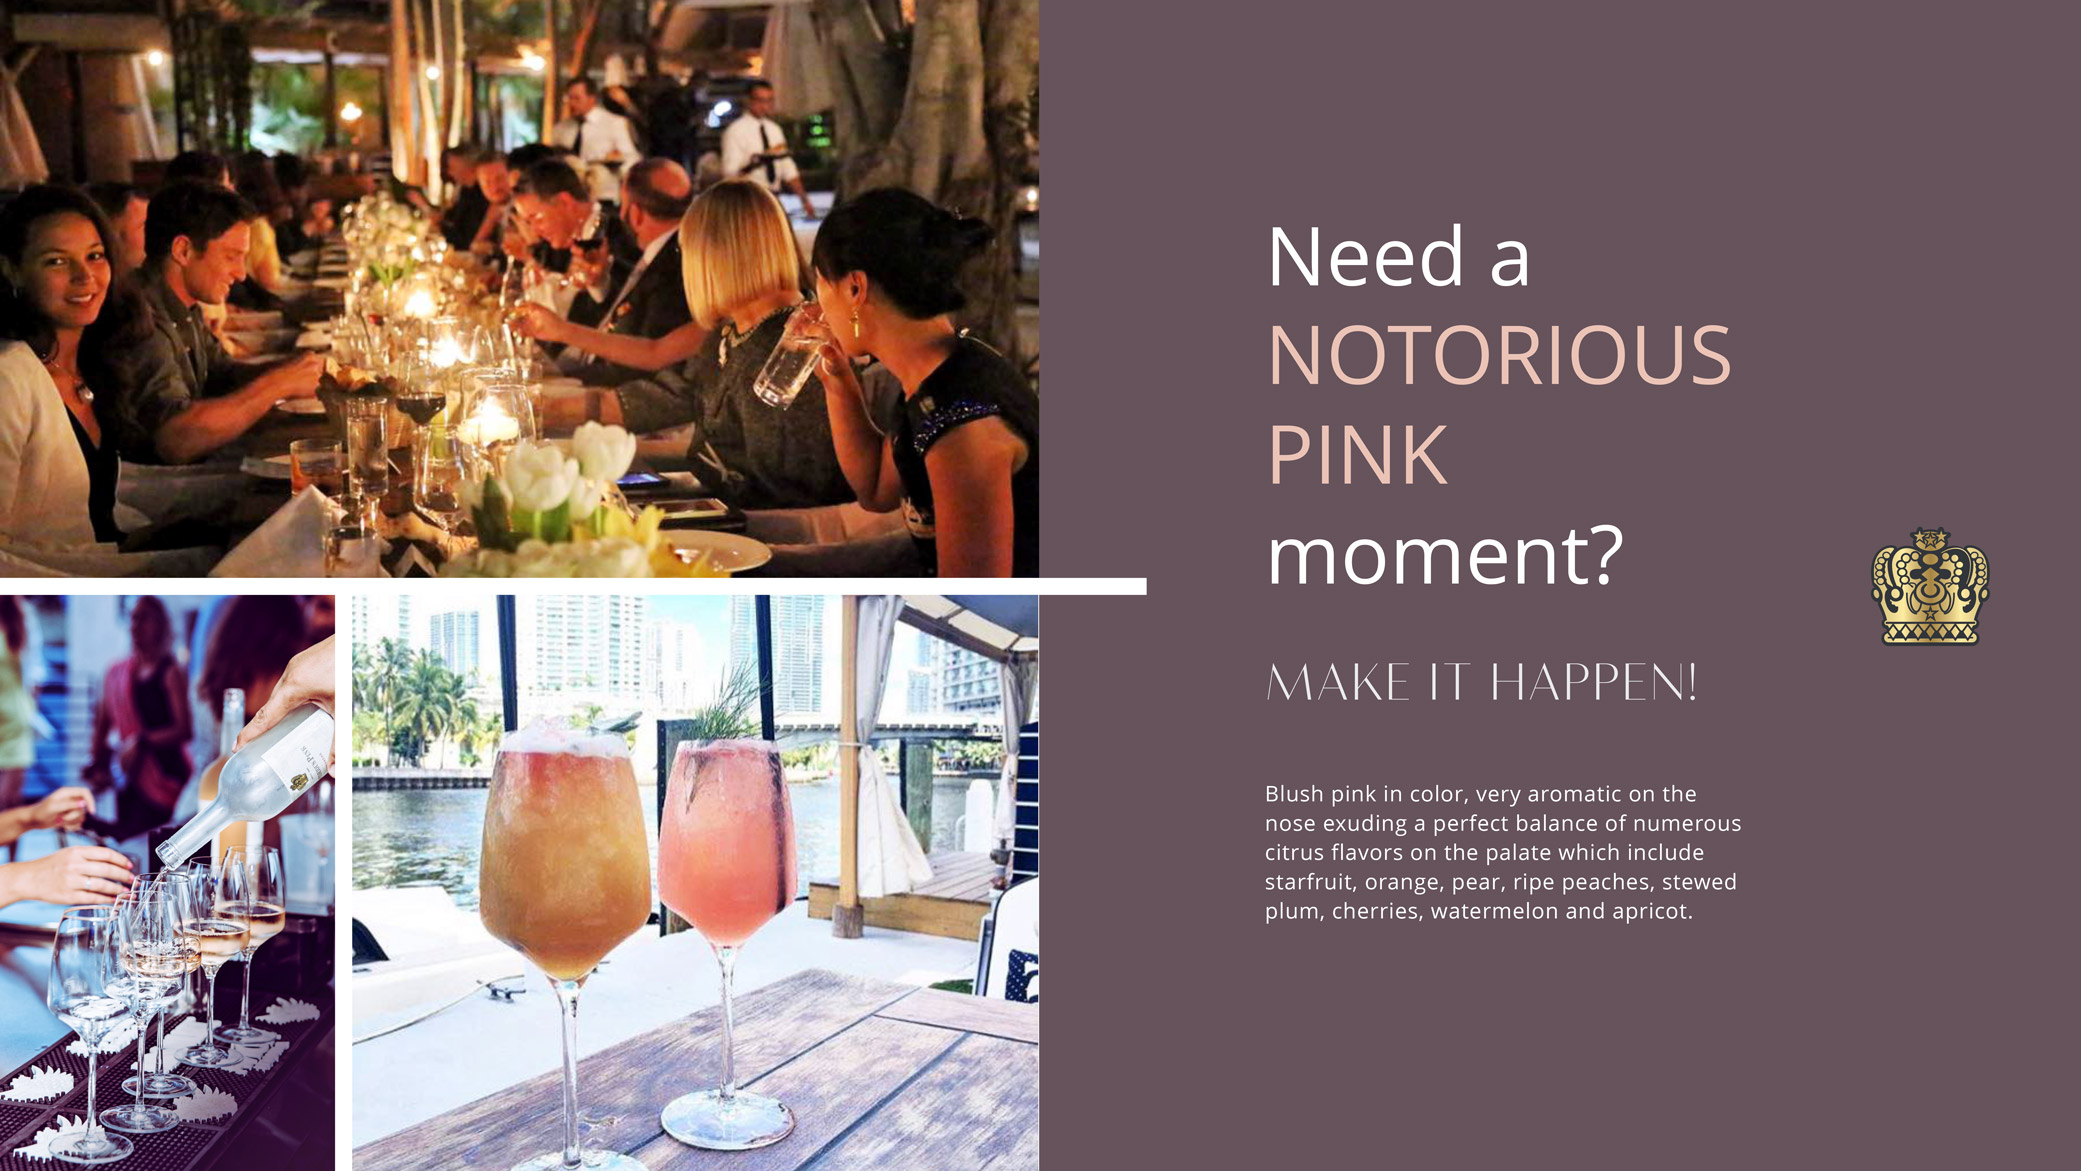 Notorious Pink 'Infinite Possibilities' campaign with images of a dinner party, cocktails, and an excerpt about the event.